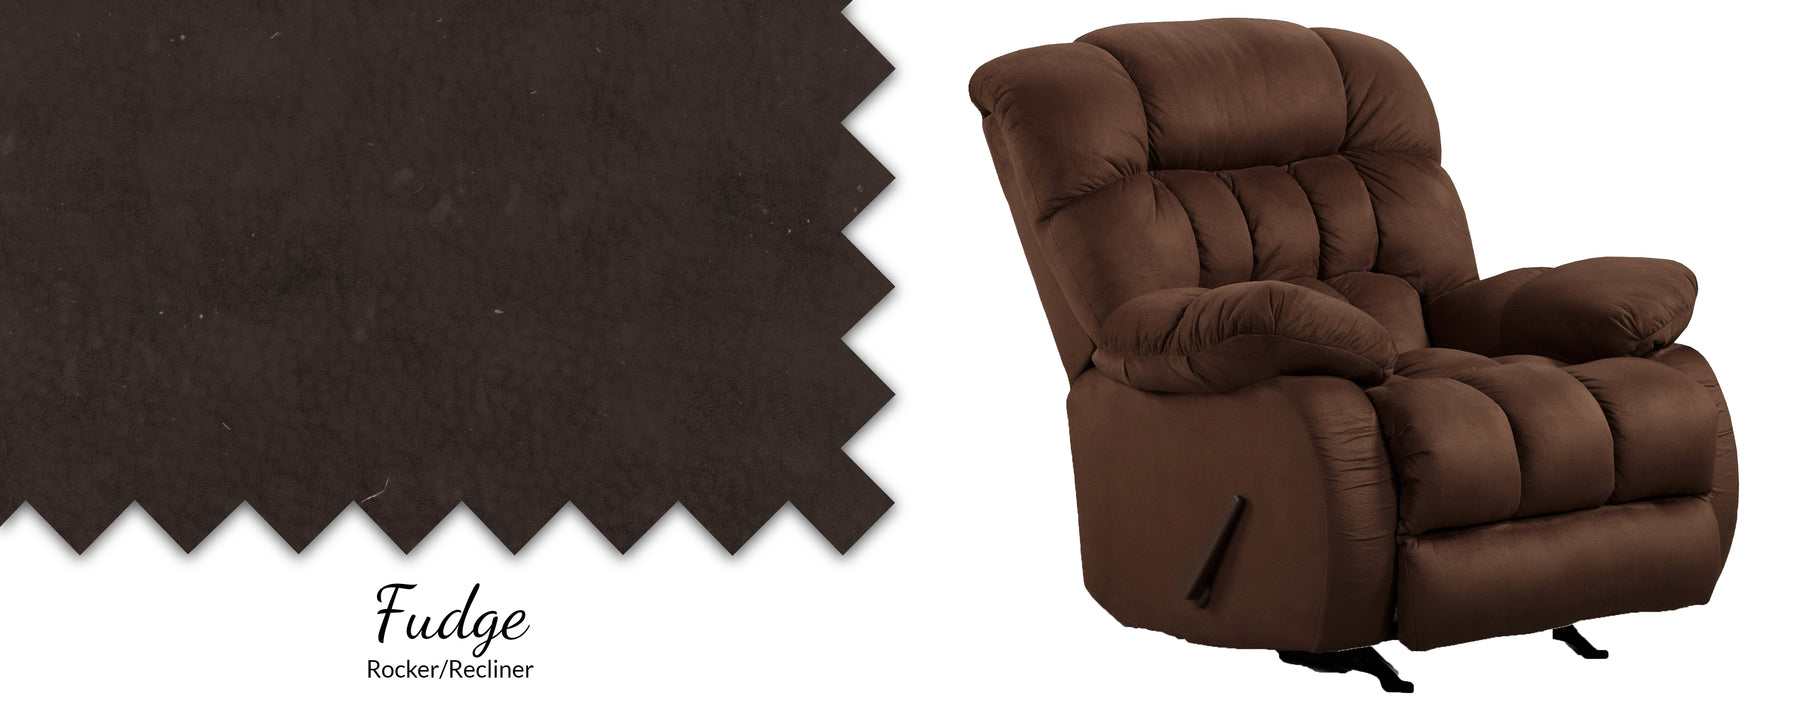 Suede Pad Over Chaise Rocker/Recliner